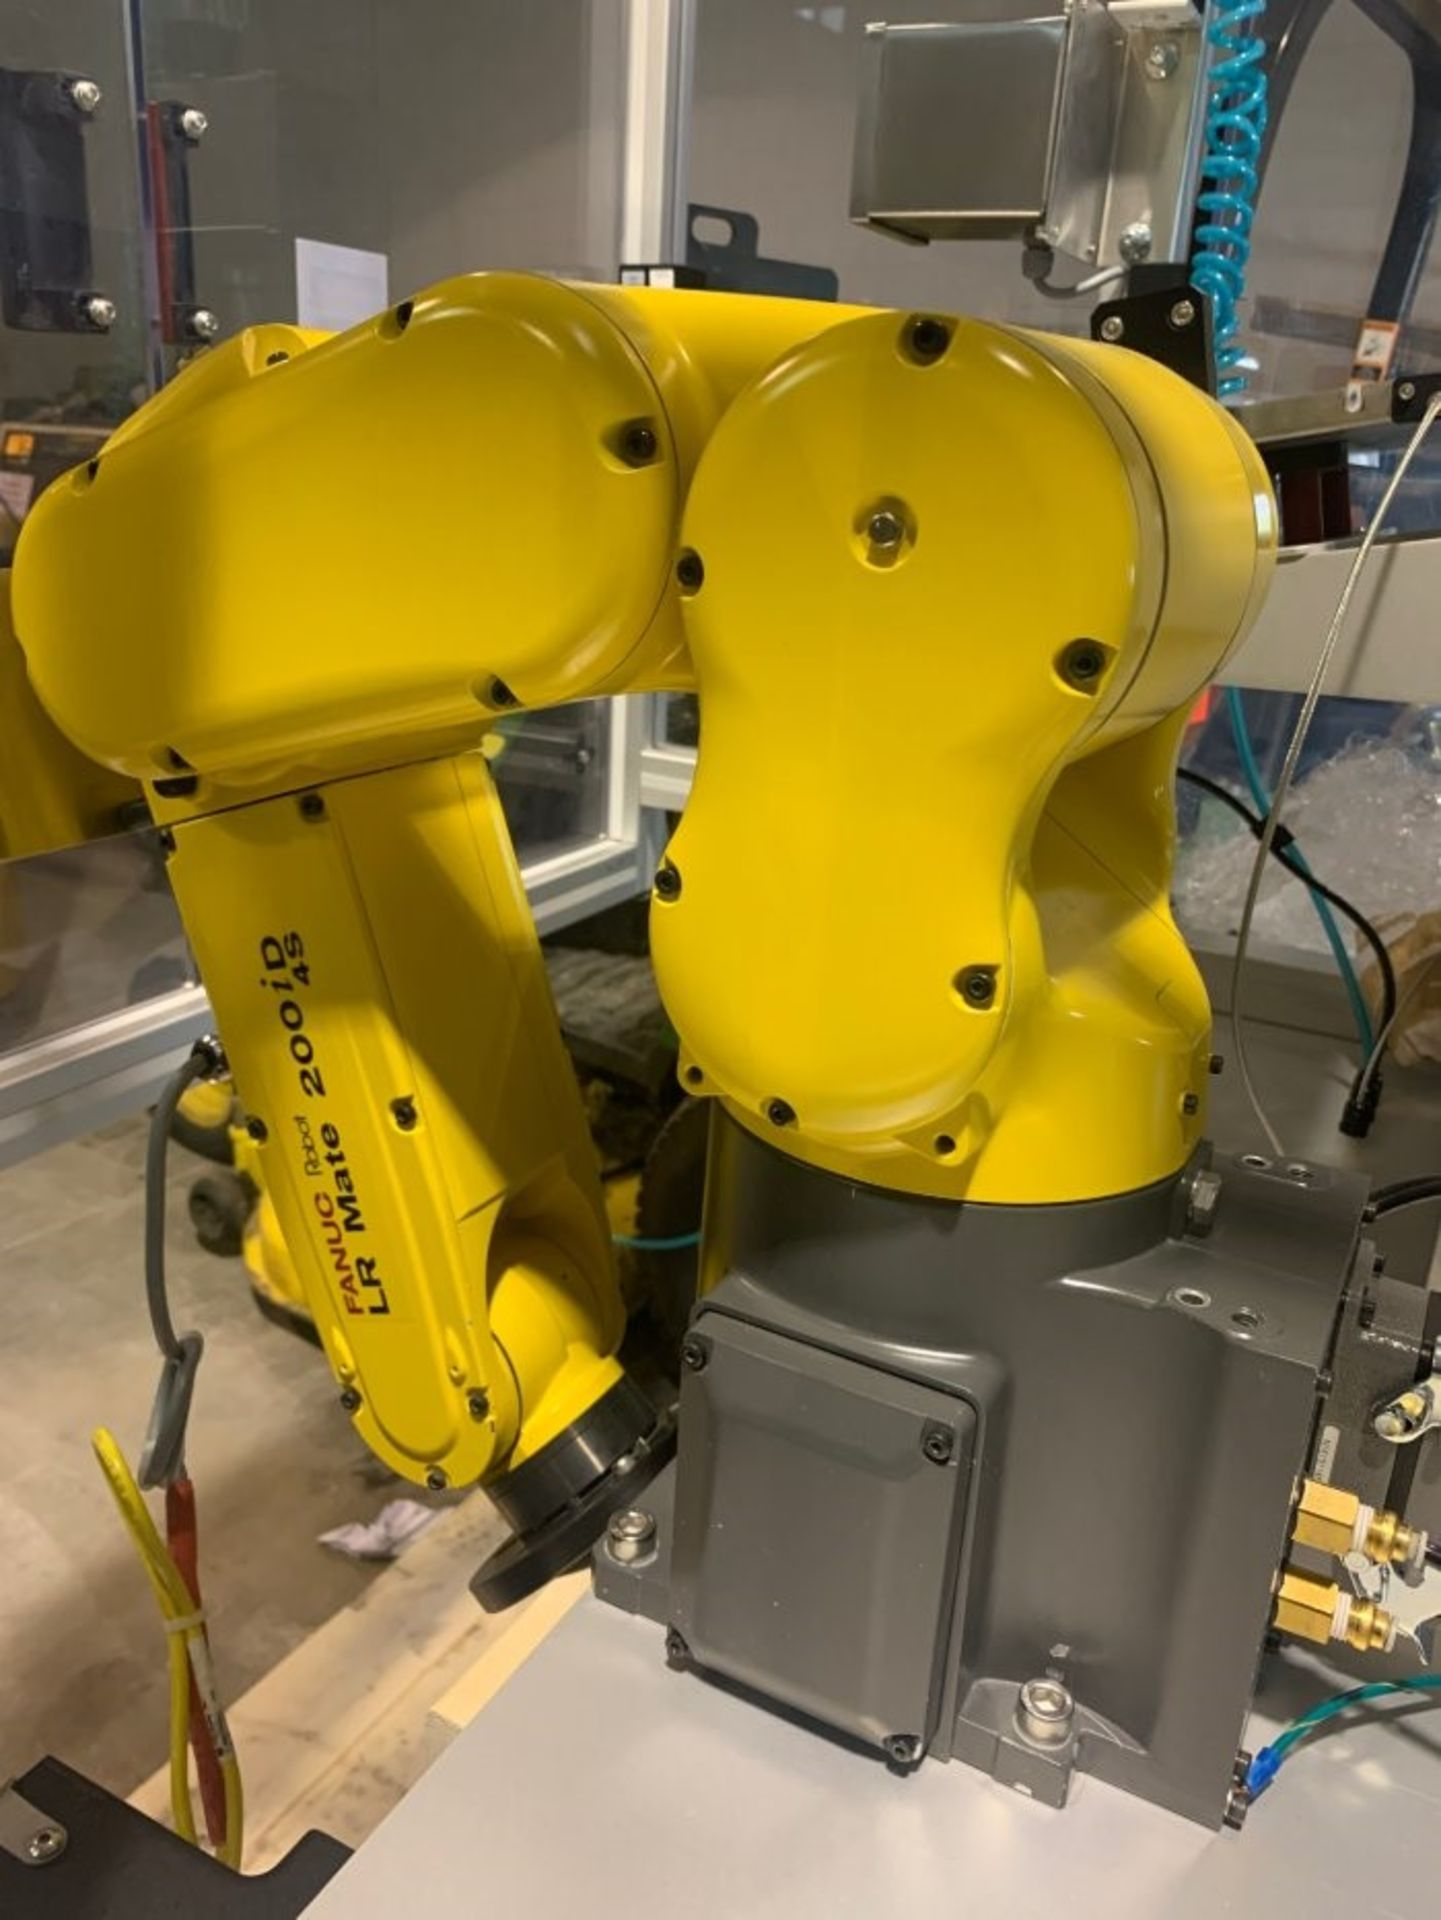 FANUC ROBOTIC VIBRATORY CELL LR MATE 200iD/4S WITH R30iB CONTROL AND ALLEN BRADLEY PLC HIM SN 176518 - Image 4 of 8